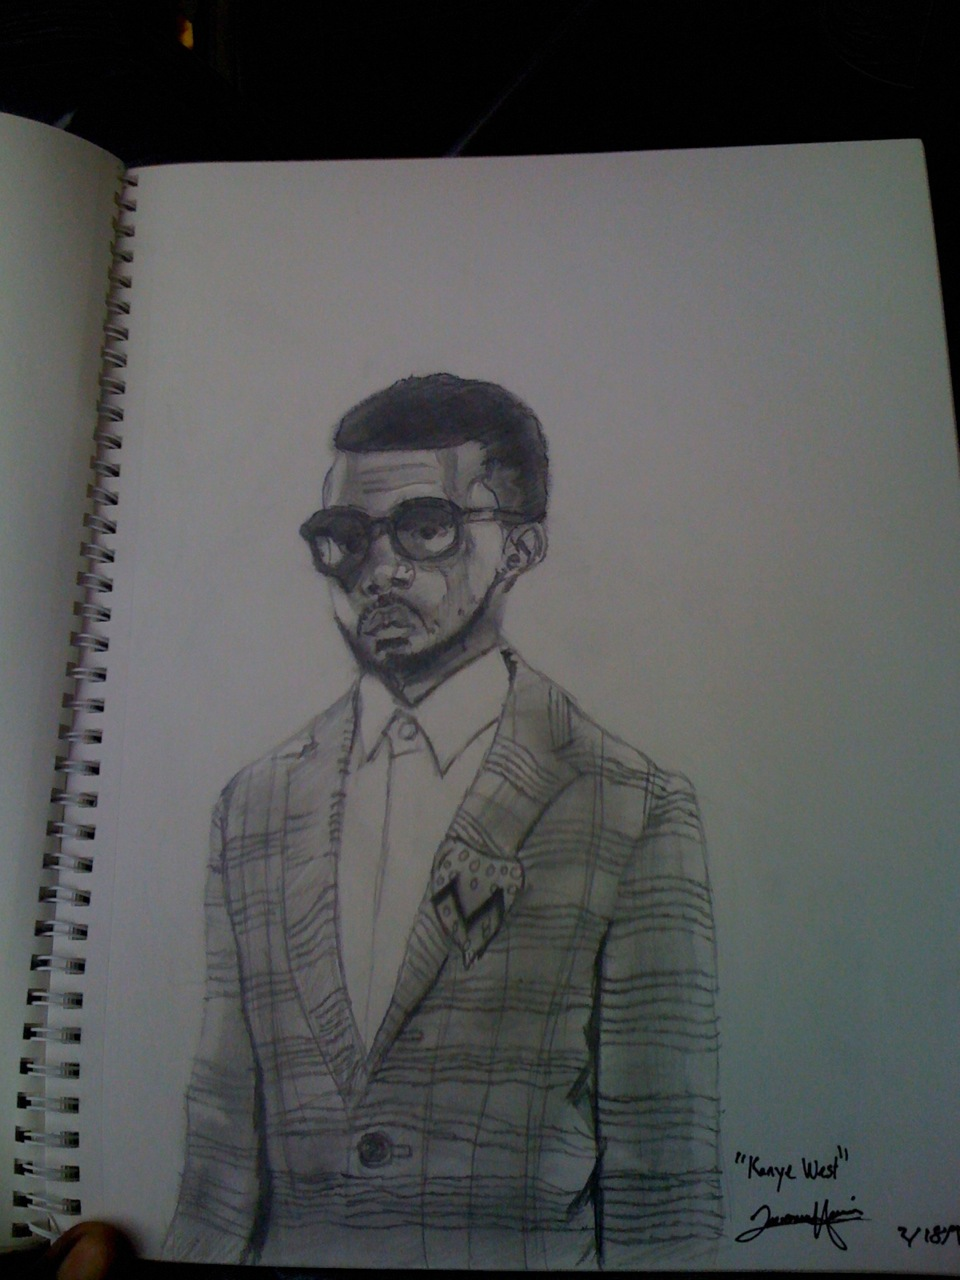 KANYE WEST BY ME(JHarry)   I CREATED THIS A WHILE AGO   SPREAD WORD….